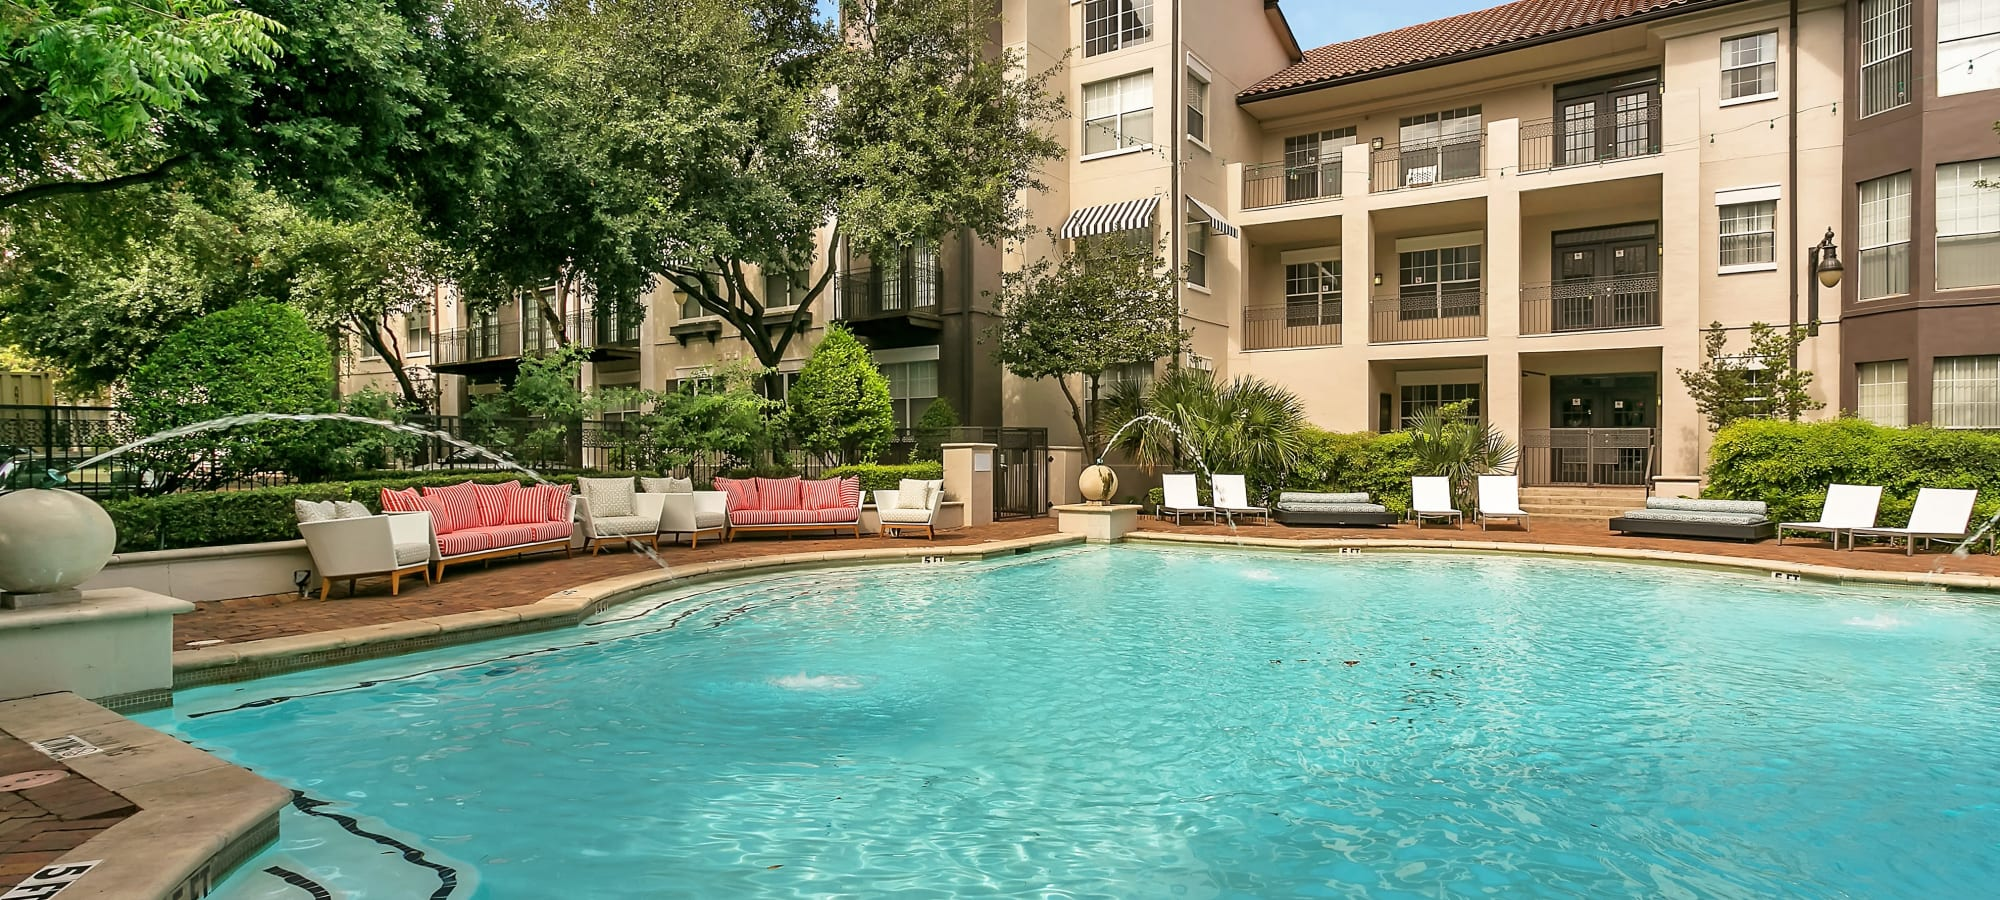 Apartments at Alesio Urban Center in Irving, Texas